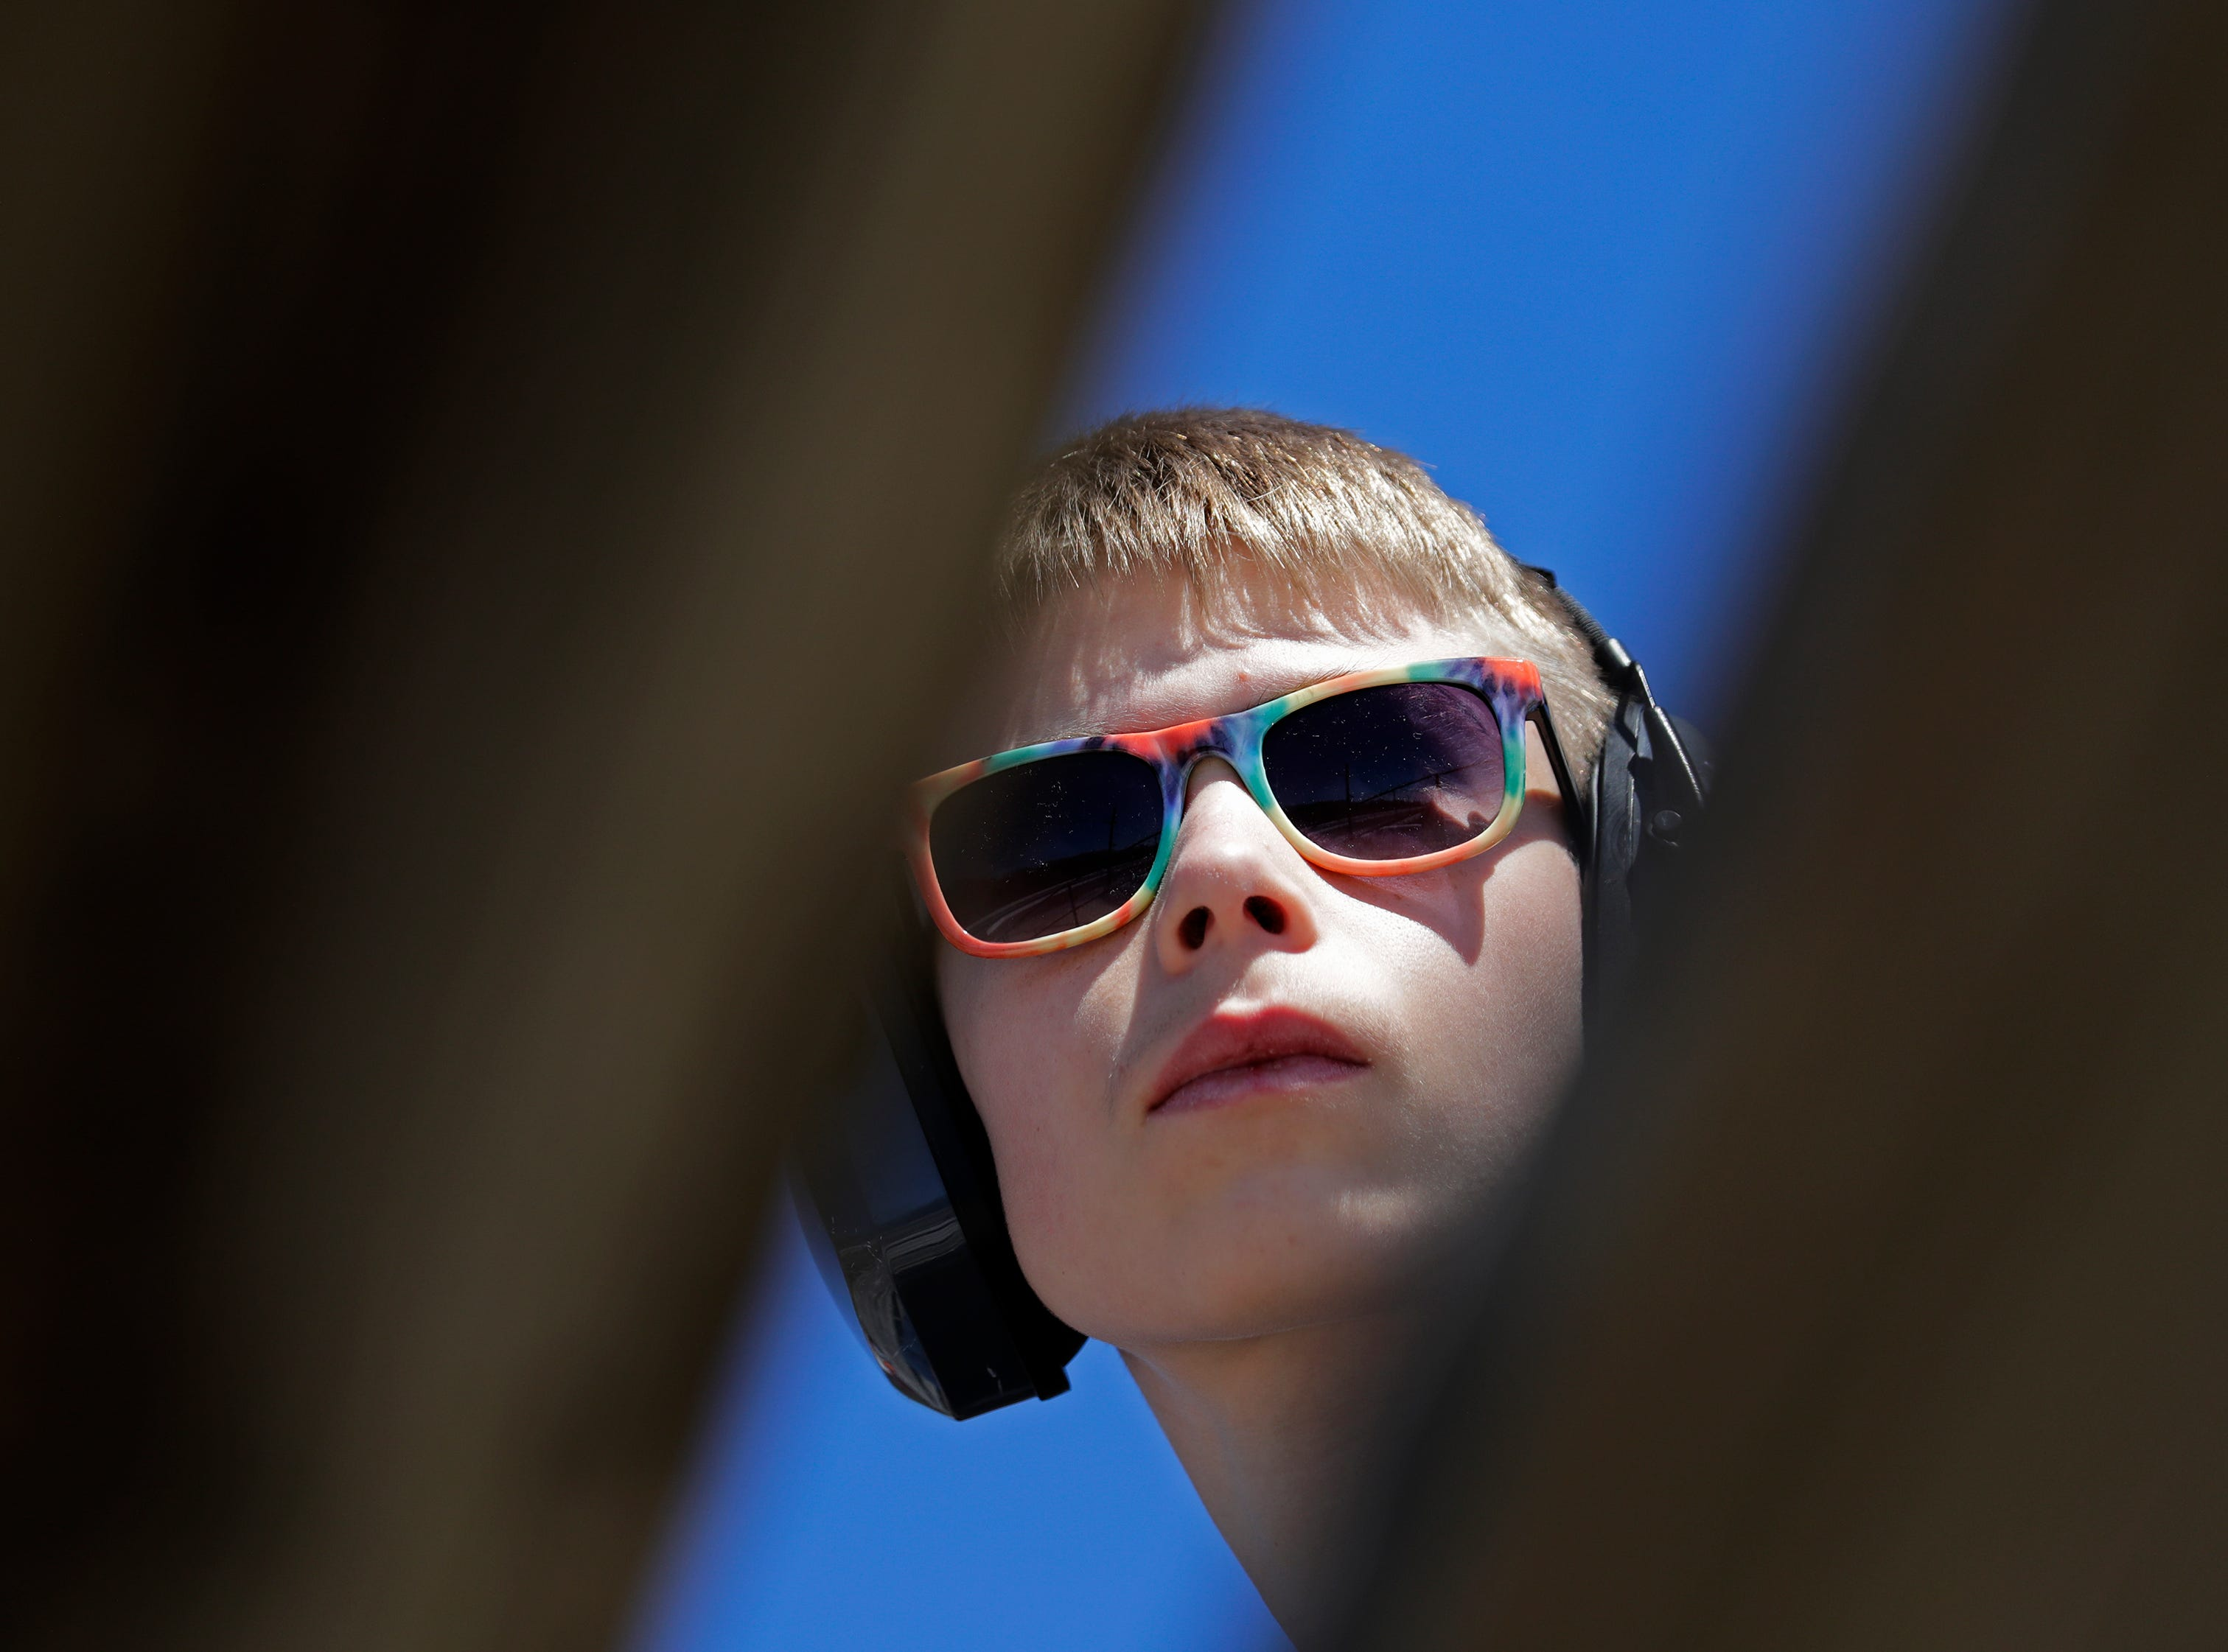 Colby Gill, 14, of Neenah keeps his eyes on the action during the Wisconsin International Raceway Strip Test & Tune event Saturday, April 20, 2019, in Kaukauna, Wis. Drivers spent the day getting safety inspections, tune ups and test runs on the track for the upcoming season.